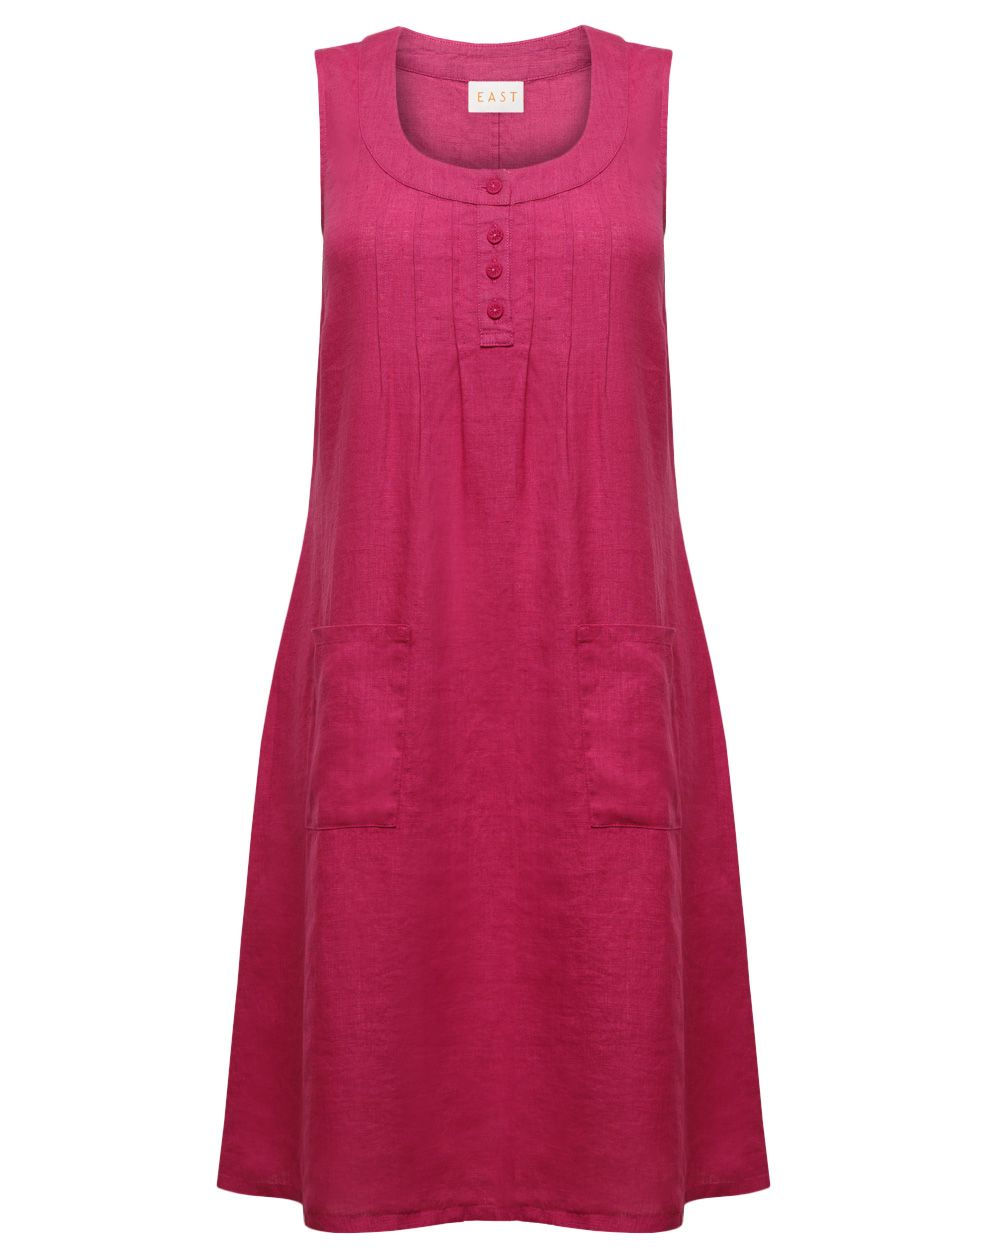 Pintuck Button Linen Dress